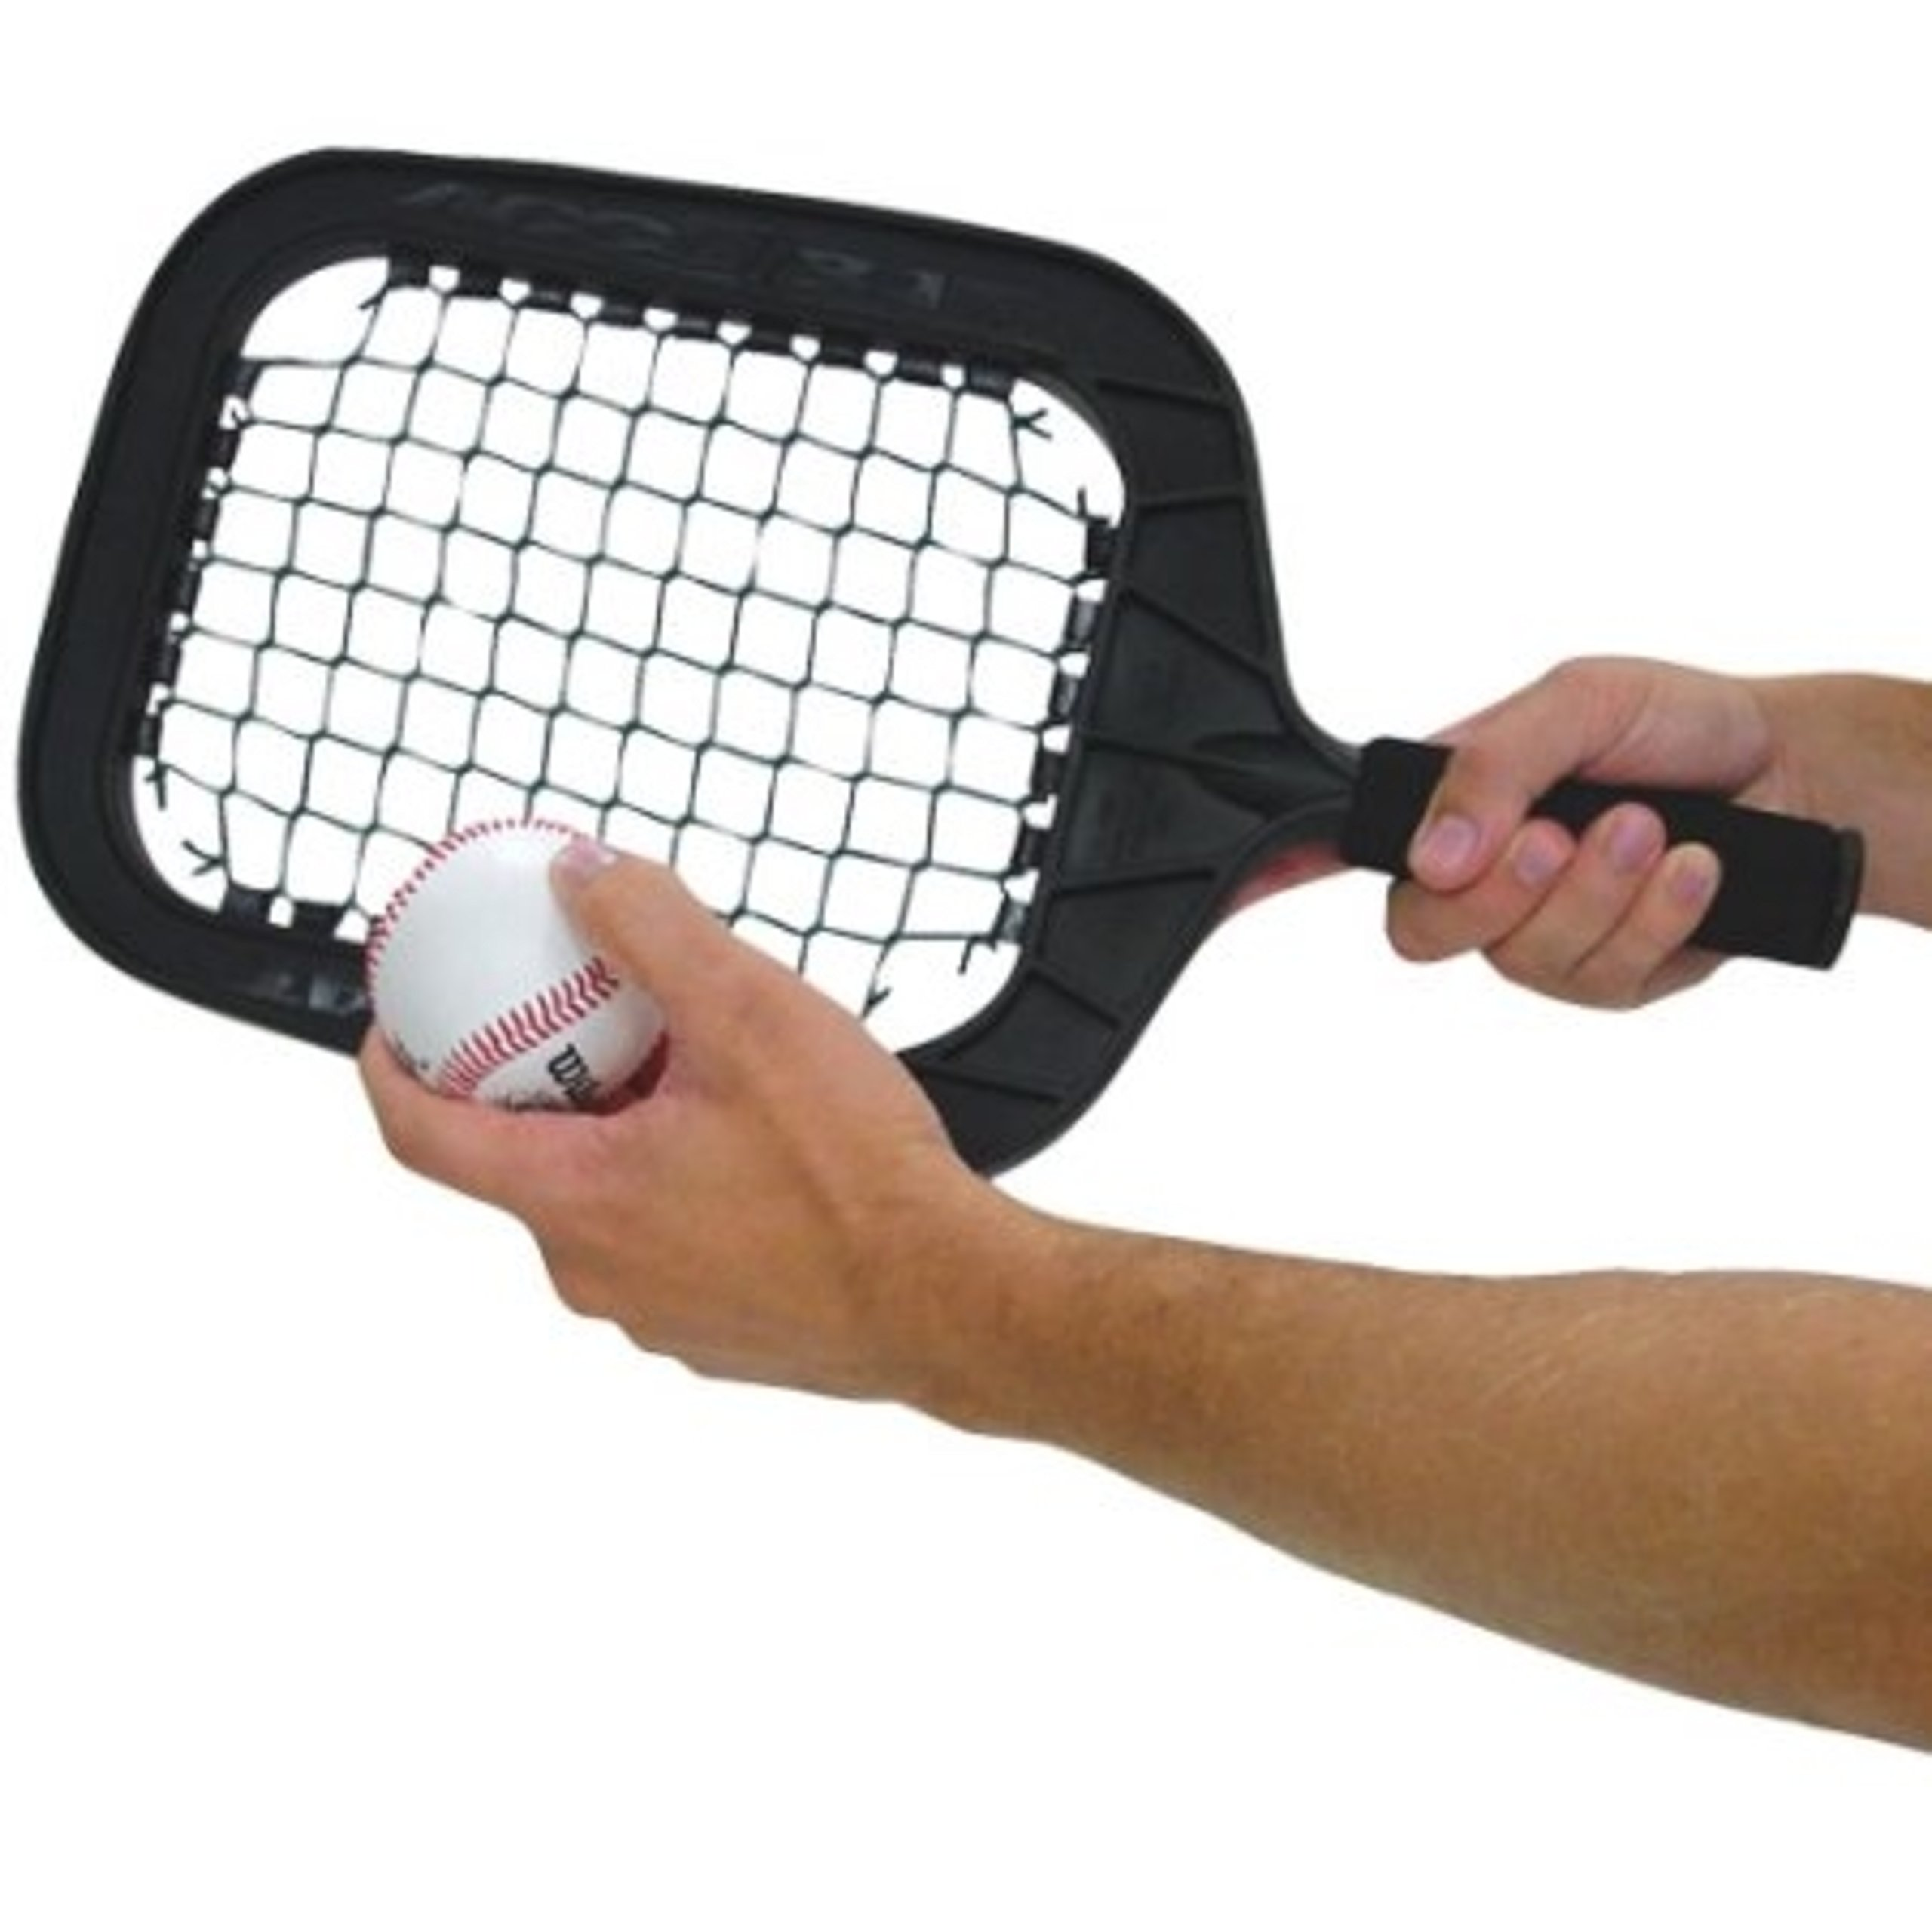 Perimeter-Weighted Design Fielding Training Paddle by ACCUBAT (Image #1)